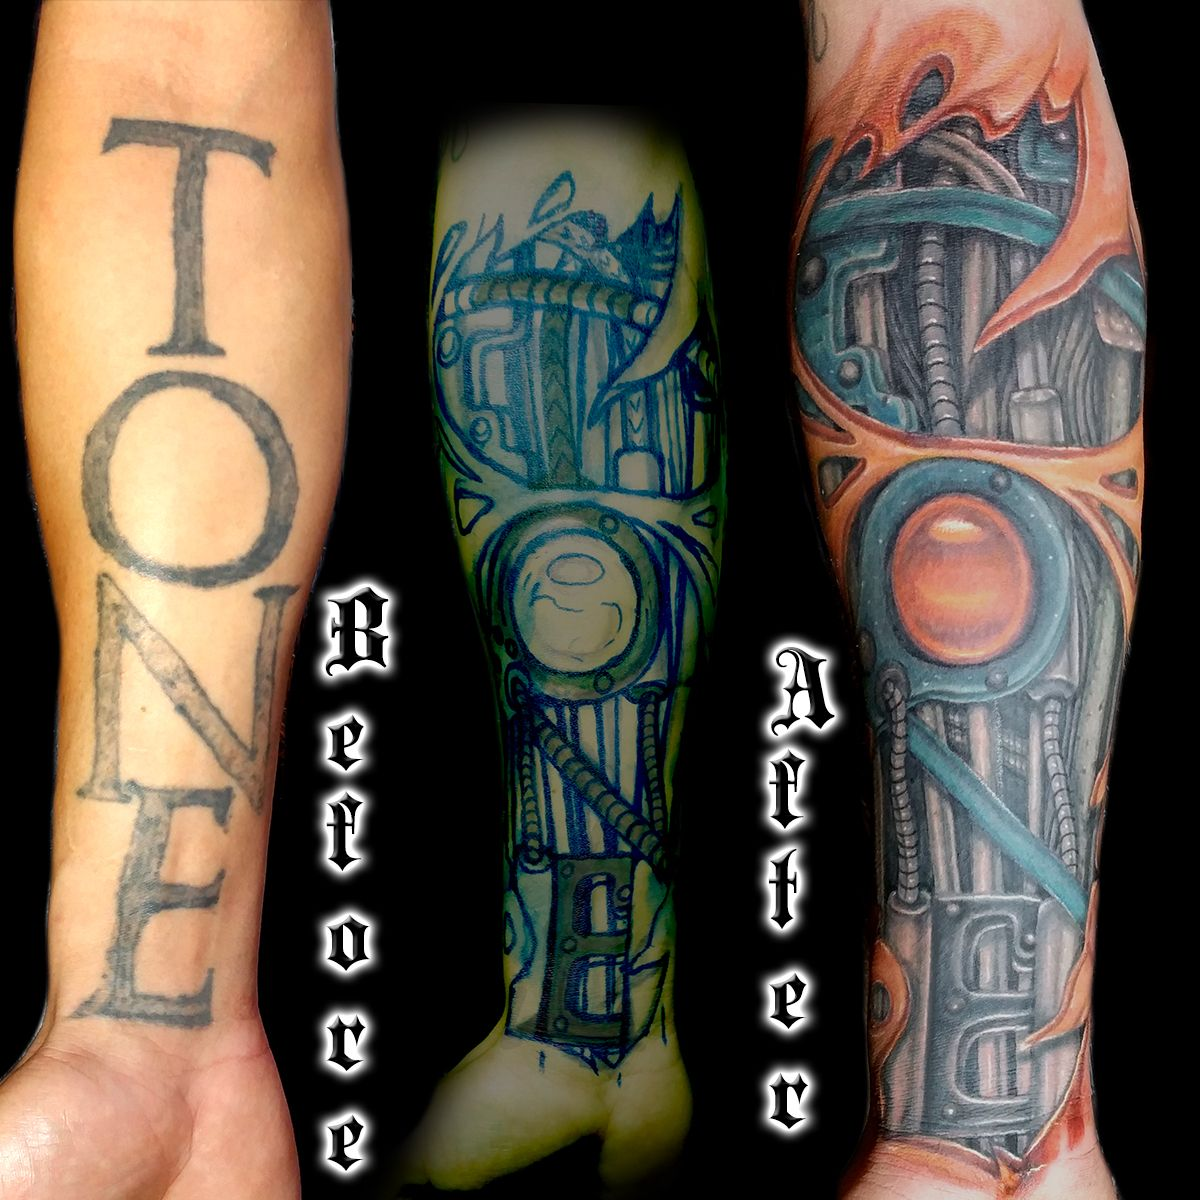 Biomechanical Cover Up Tattoo Done By Brian Martinez Best Cover Up Tattoo Artist In San Francisco Best Cover Up Tattoos Tattoo Artists Up Tattoos